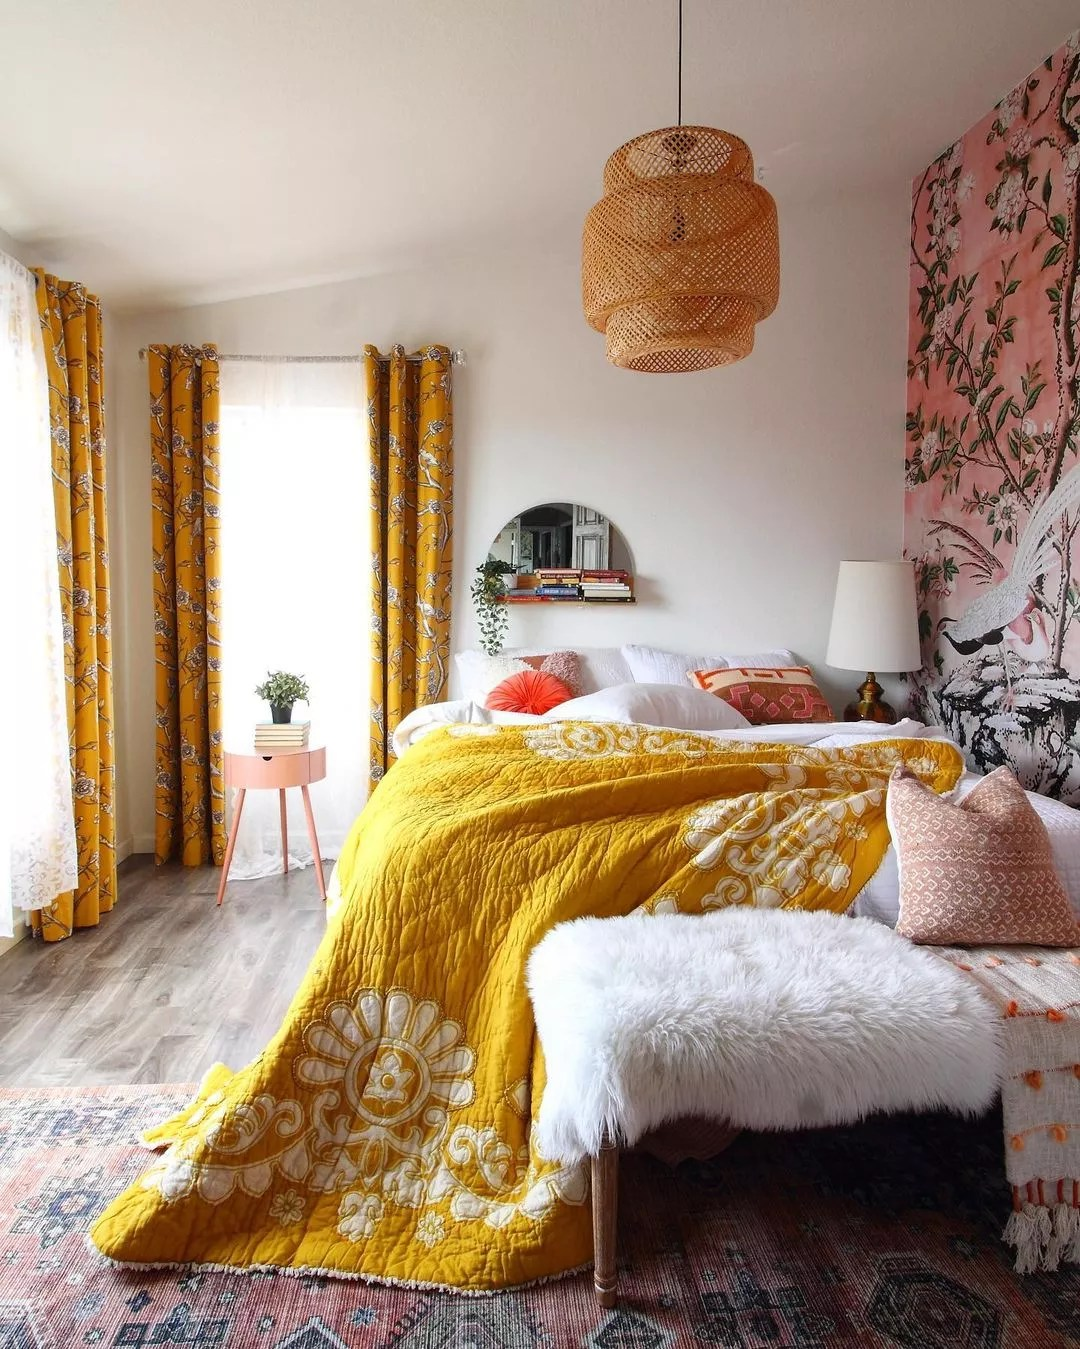 Bedroom with large windows, a lamp to the left of the bed and a hanging light with a wicker shade. The room rug has a faded, antique effect on an aztec design, and an accent wall with a scene of two birds amidst a pink sky and gentle, budding branches of a flowering tree. Photo by Instagram user @raveinteriordesign.